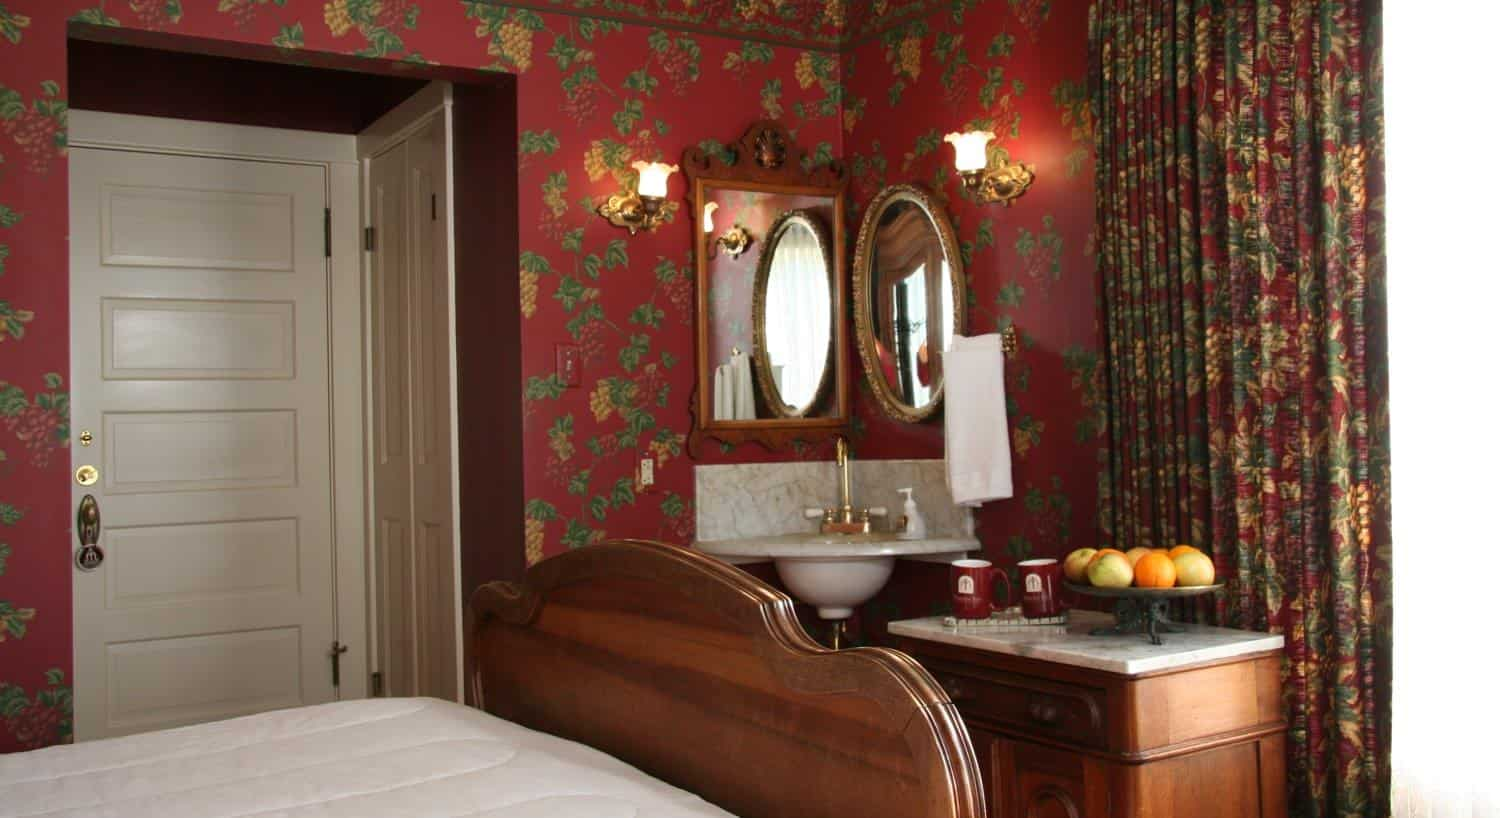 Fountain guest room with red floral walls, wood bed, corner wash basin and small table with mugs and apples